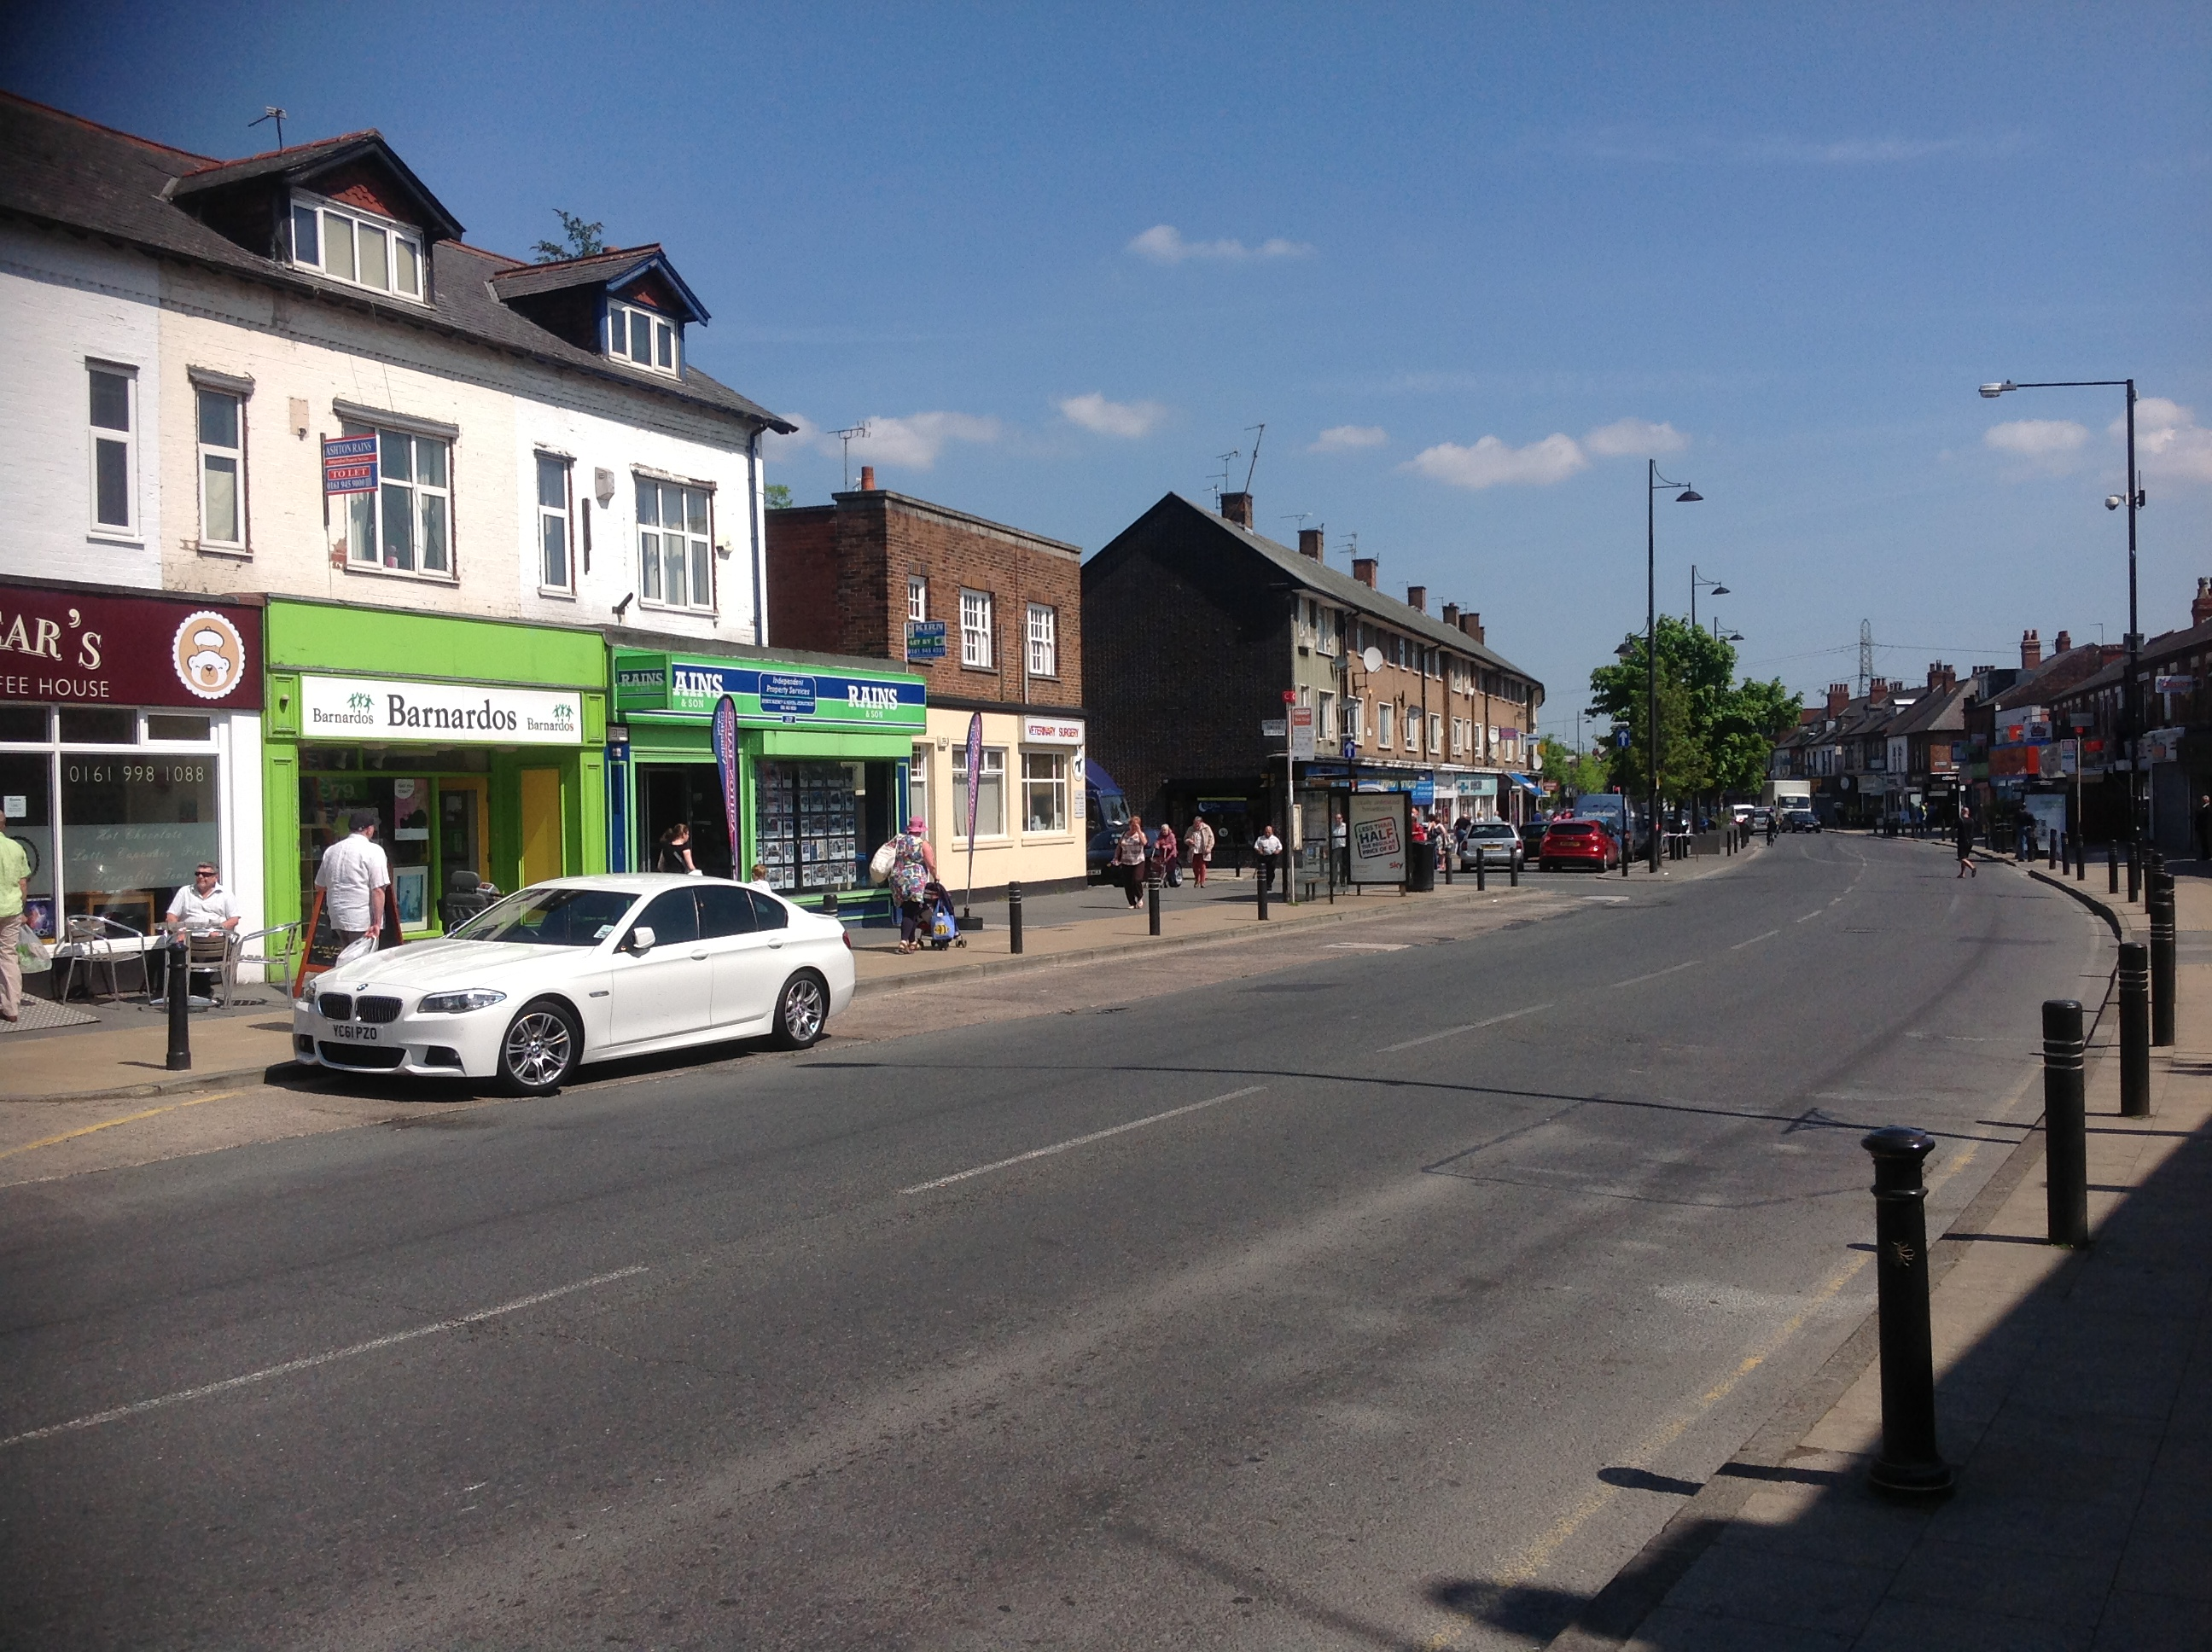 northenden-image